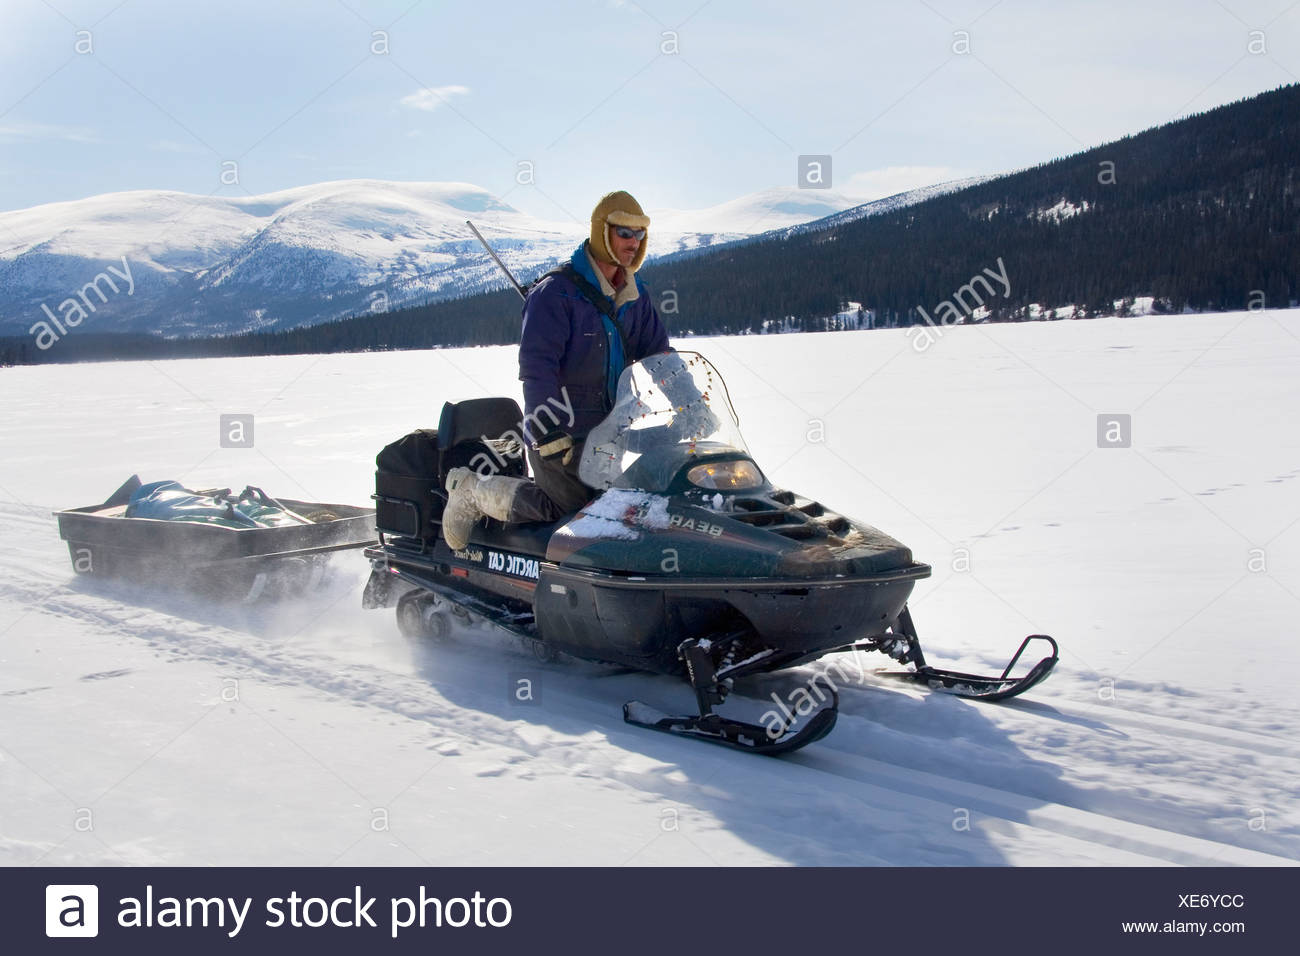 Hunter driving a snowmobile or skidoo, Yukon Territory, Canada, North America - Stock Image